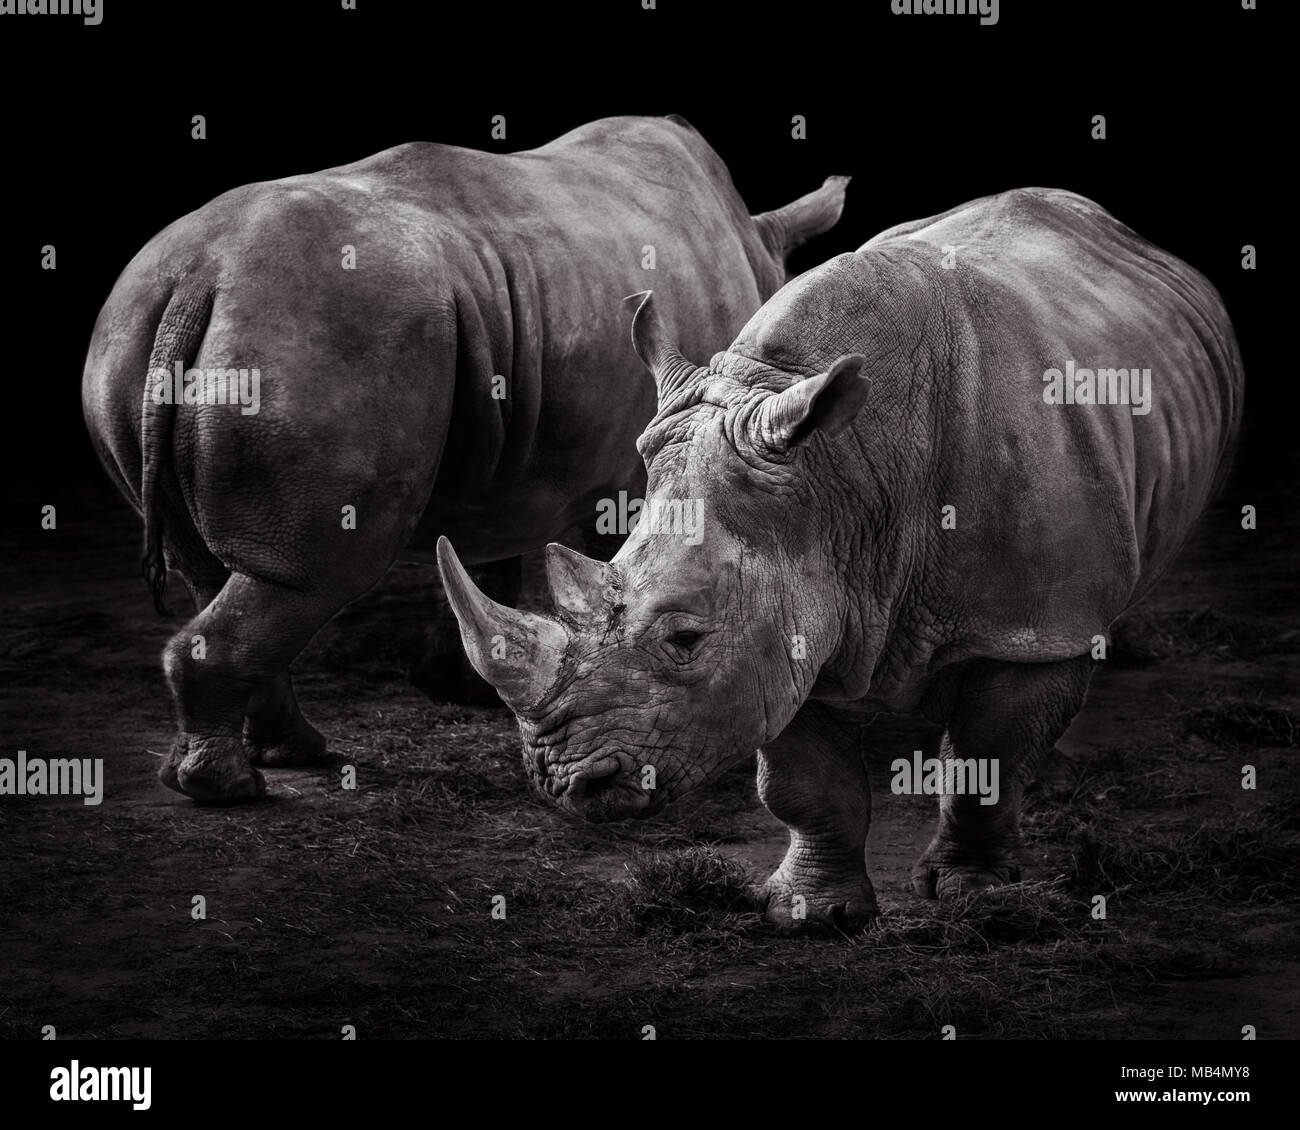 A Pair of Rhinos Against a Black Background - Stock Image